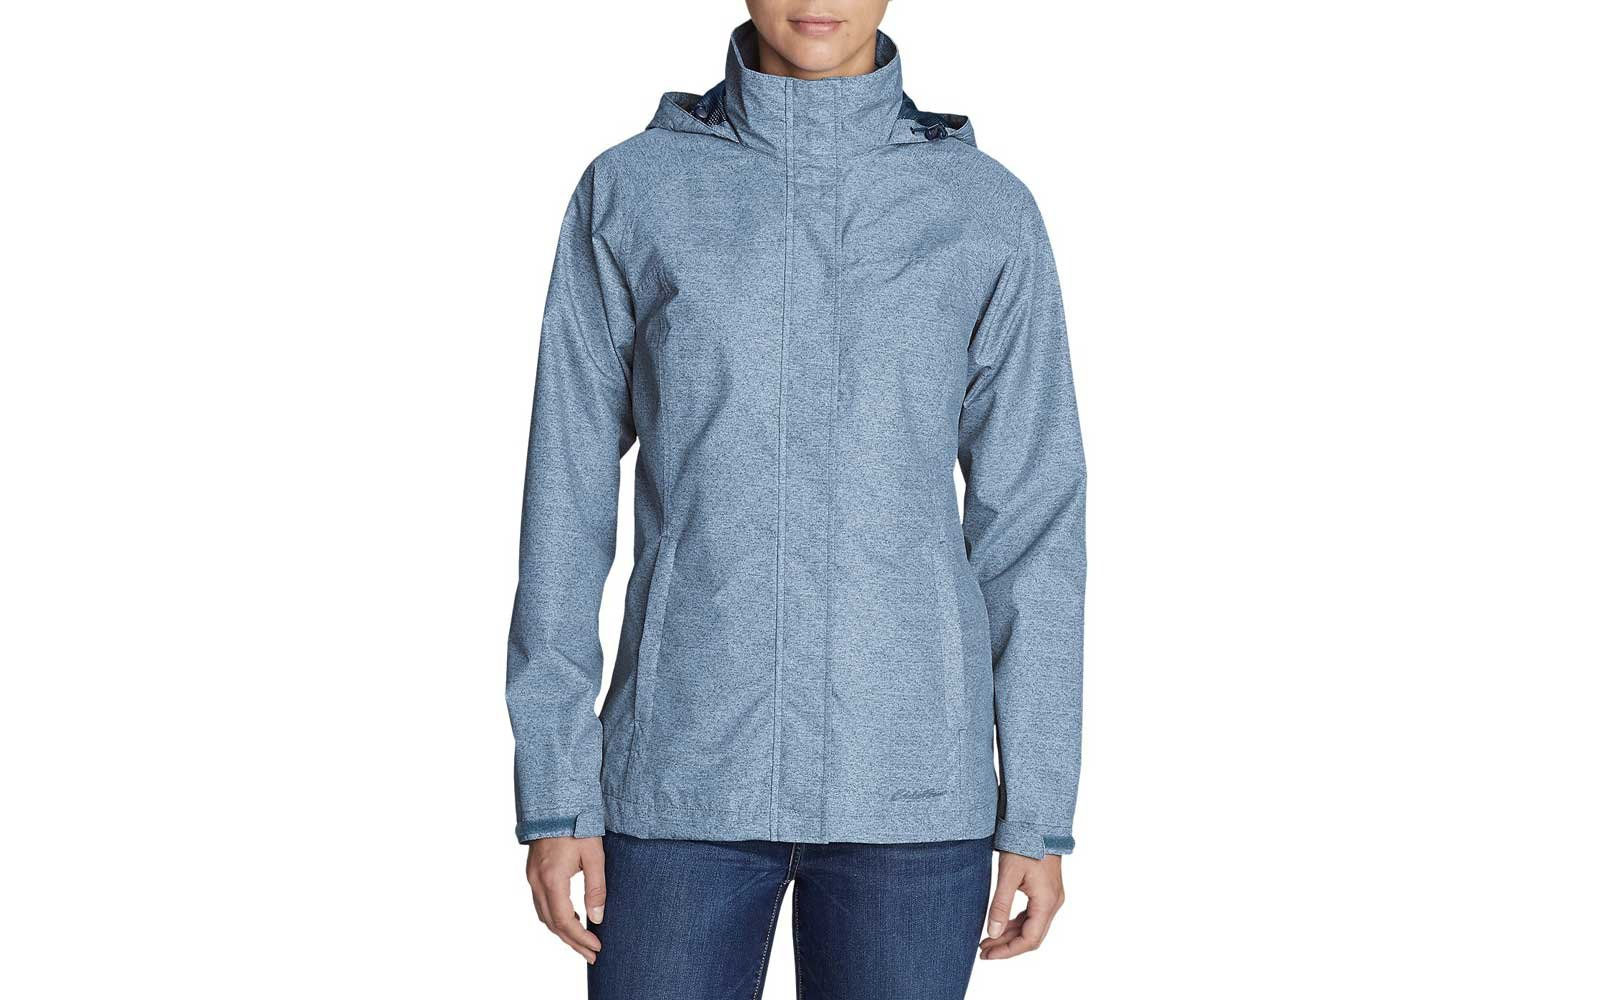 eddie bauer packable rain jacket